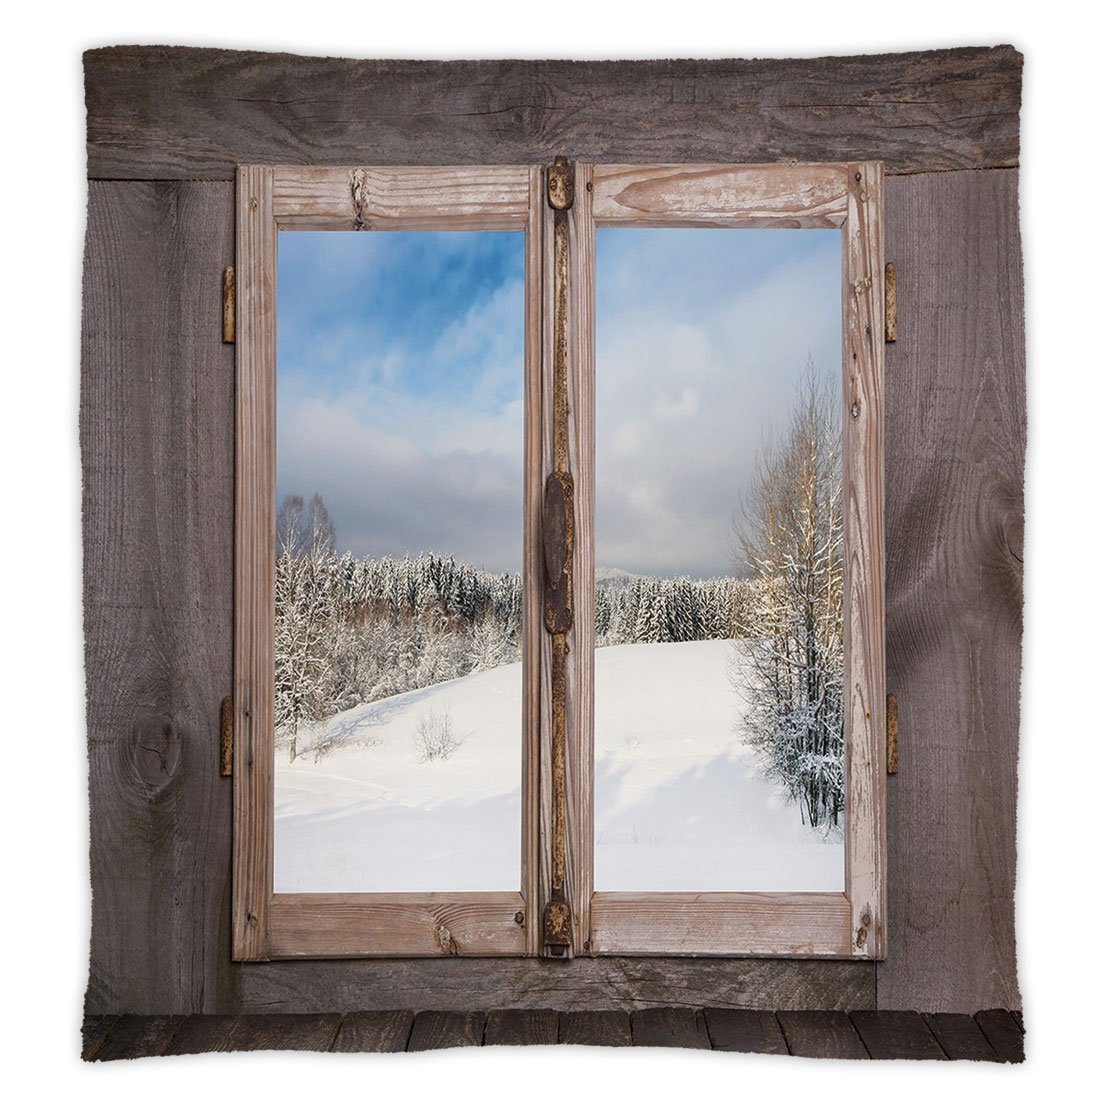 iPrint Super Soft Throw Blanket Custom Design Cozy Fleece Blanket,Rustic,Winter Season Scene from a Wooden Window of Country House Snow Vintage Design,Umber White Blue,Perfect for Couch Sofa or Bed